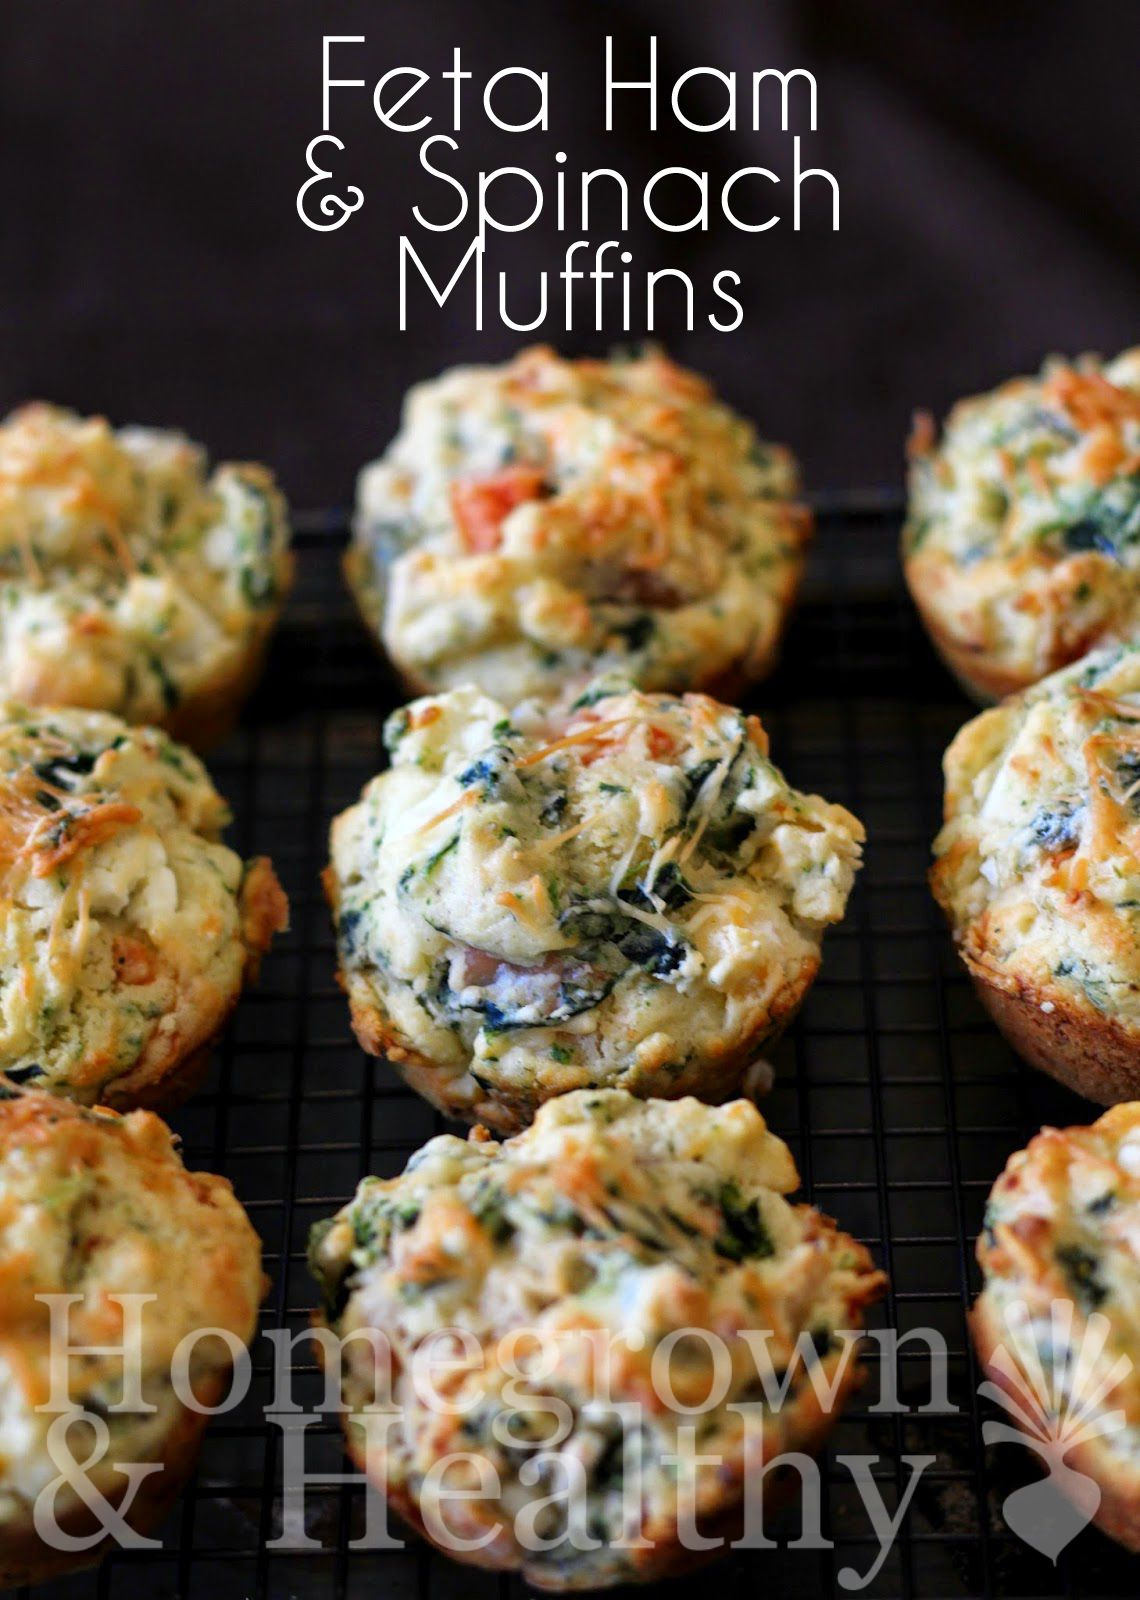 FETA SPINACH AND HAM MUFFINS - Homegrown & Healthy